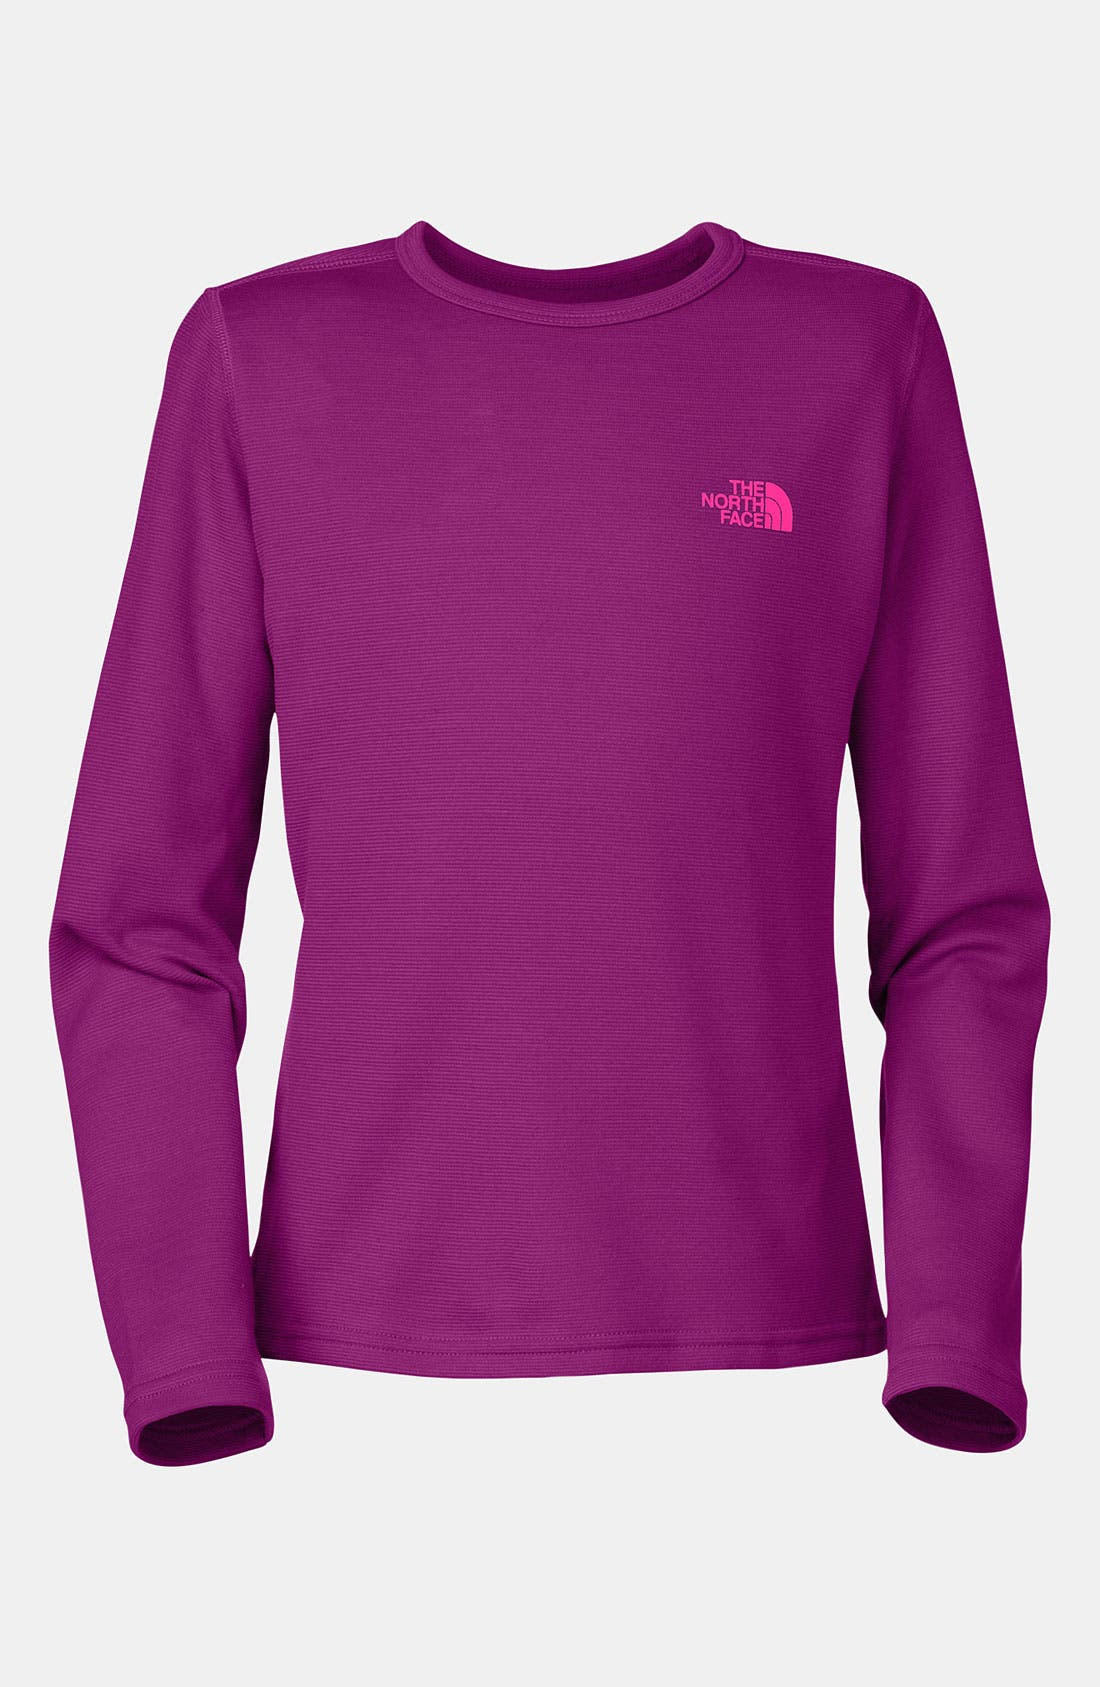 Alternate Image 1 Selected - The North Face Base Layer Tee (Little Girls & Big Girls)